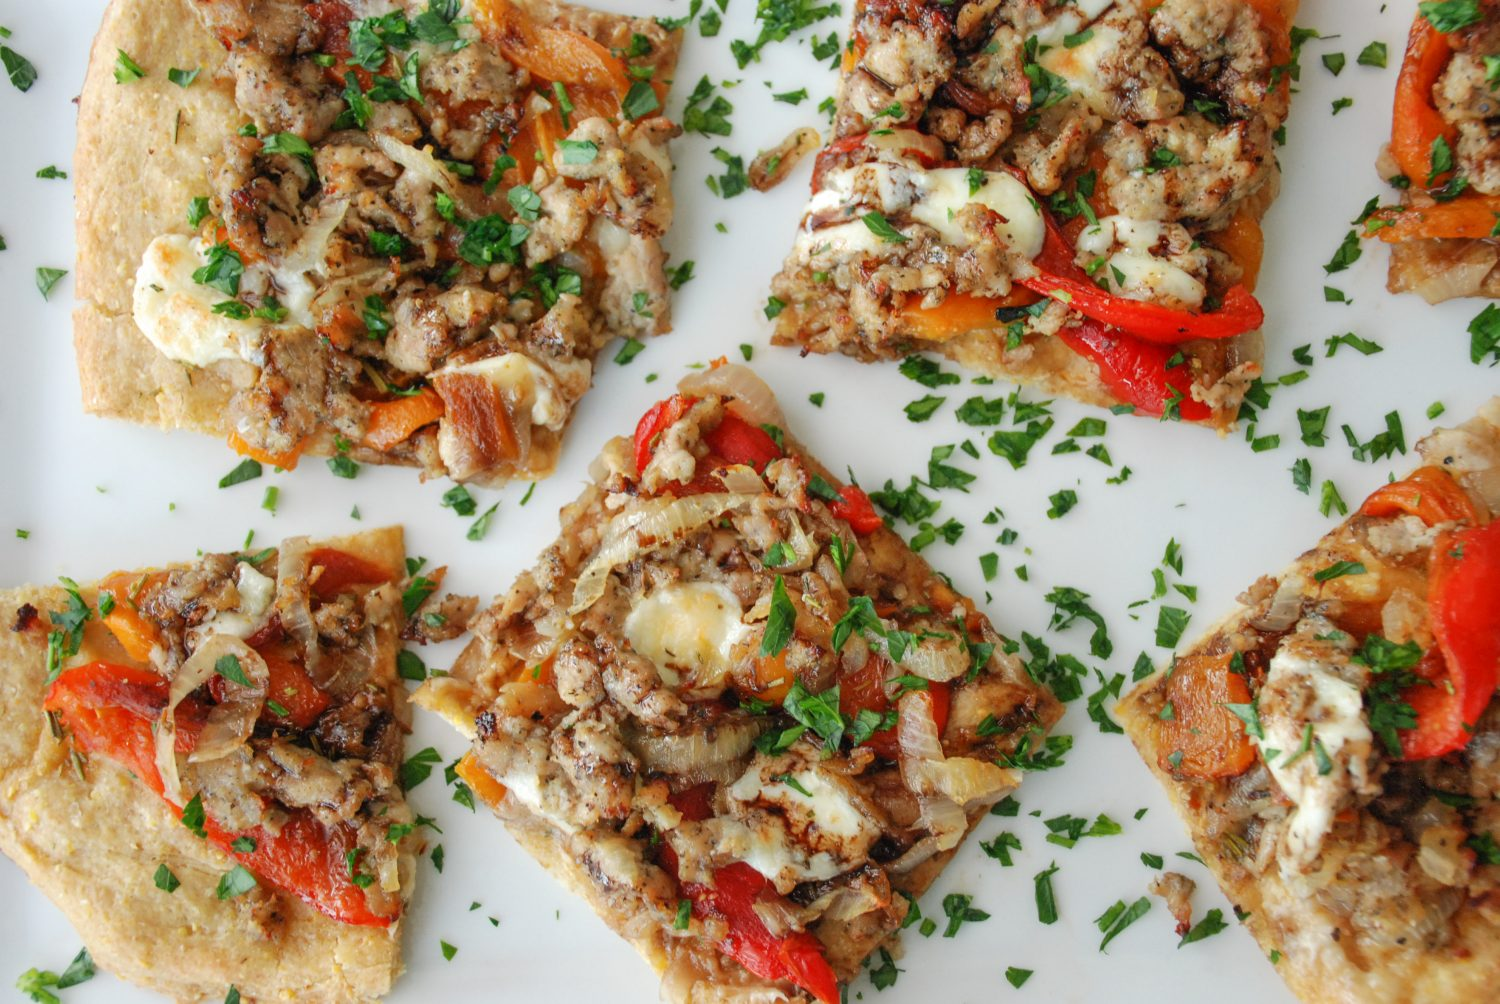 Sausage & Roasted Bell Pepper Tart with Fresh Mozzarella and Balsamic Drizzle